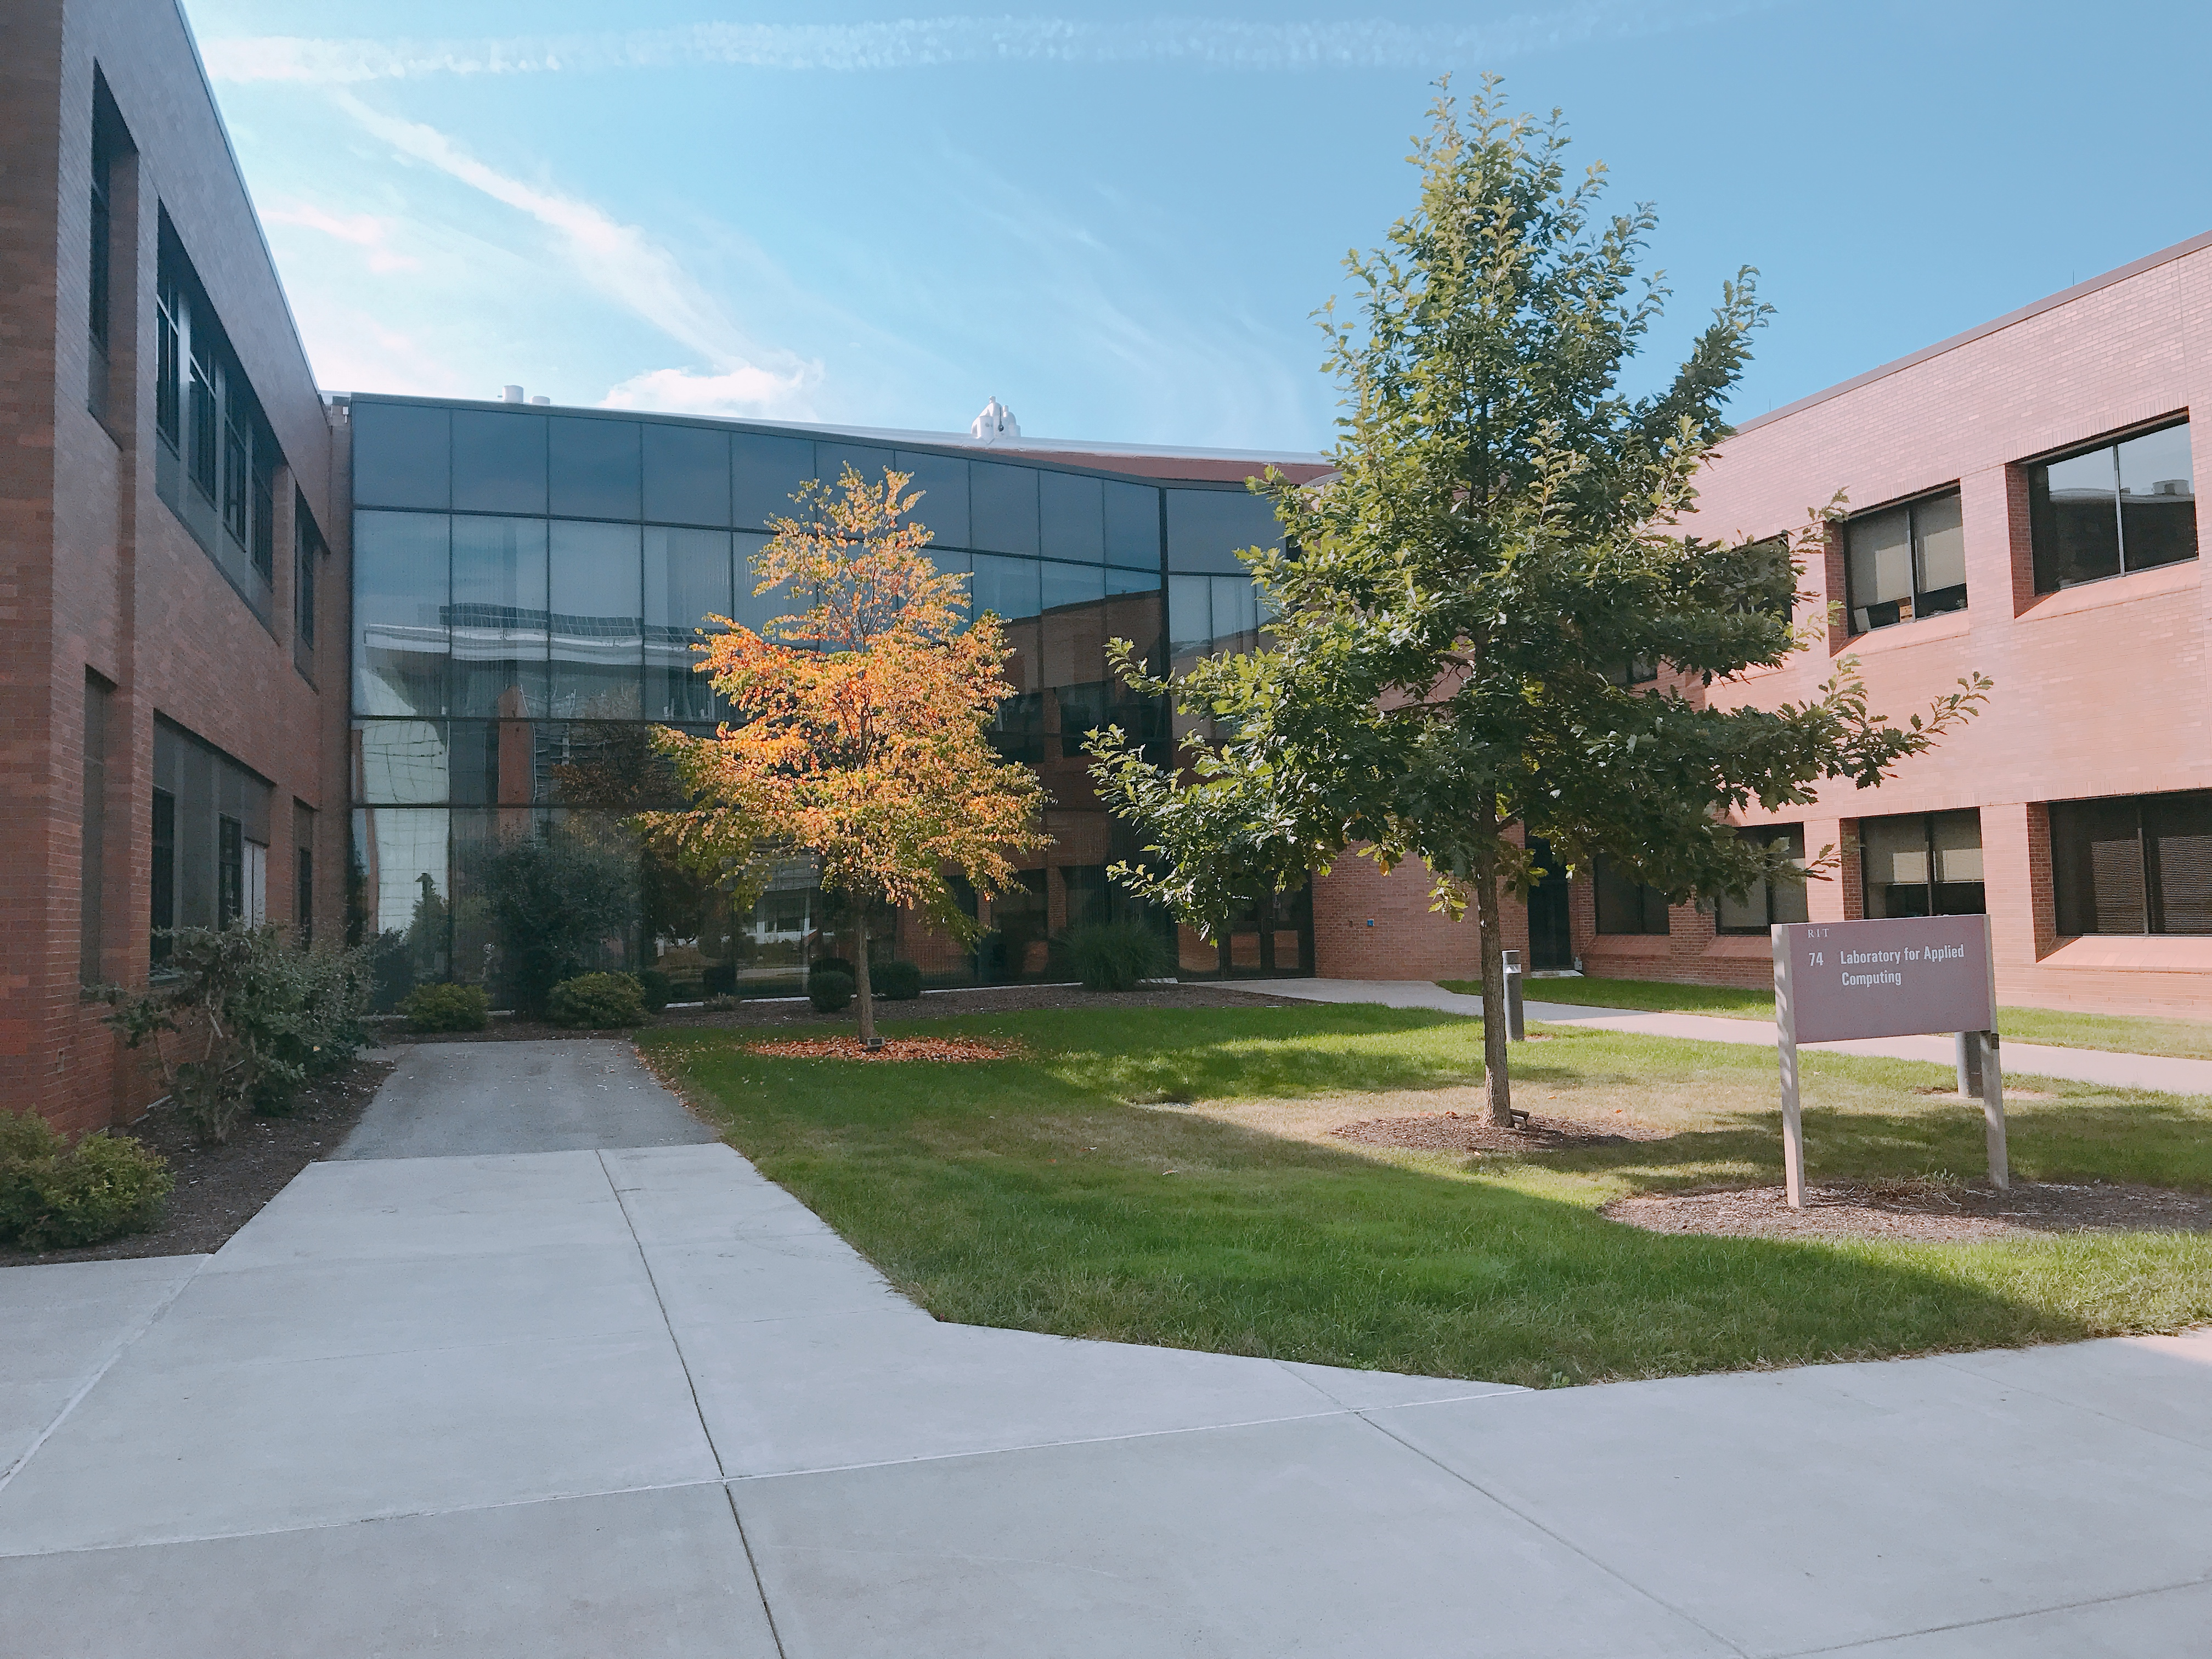 The CCRG is located on the 2nd floor of RIT's Building 74, the Laboratory for Applied Computing